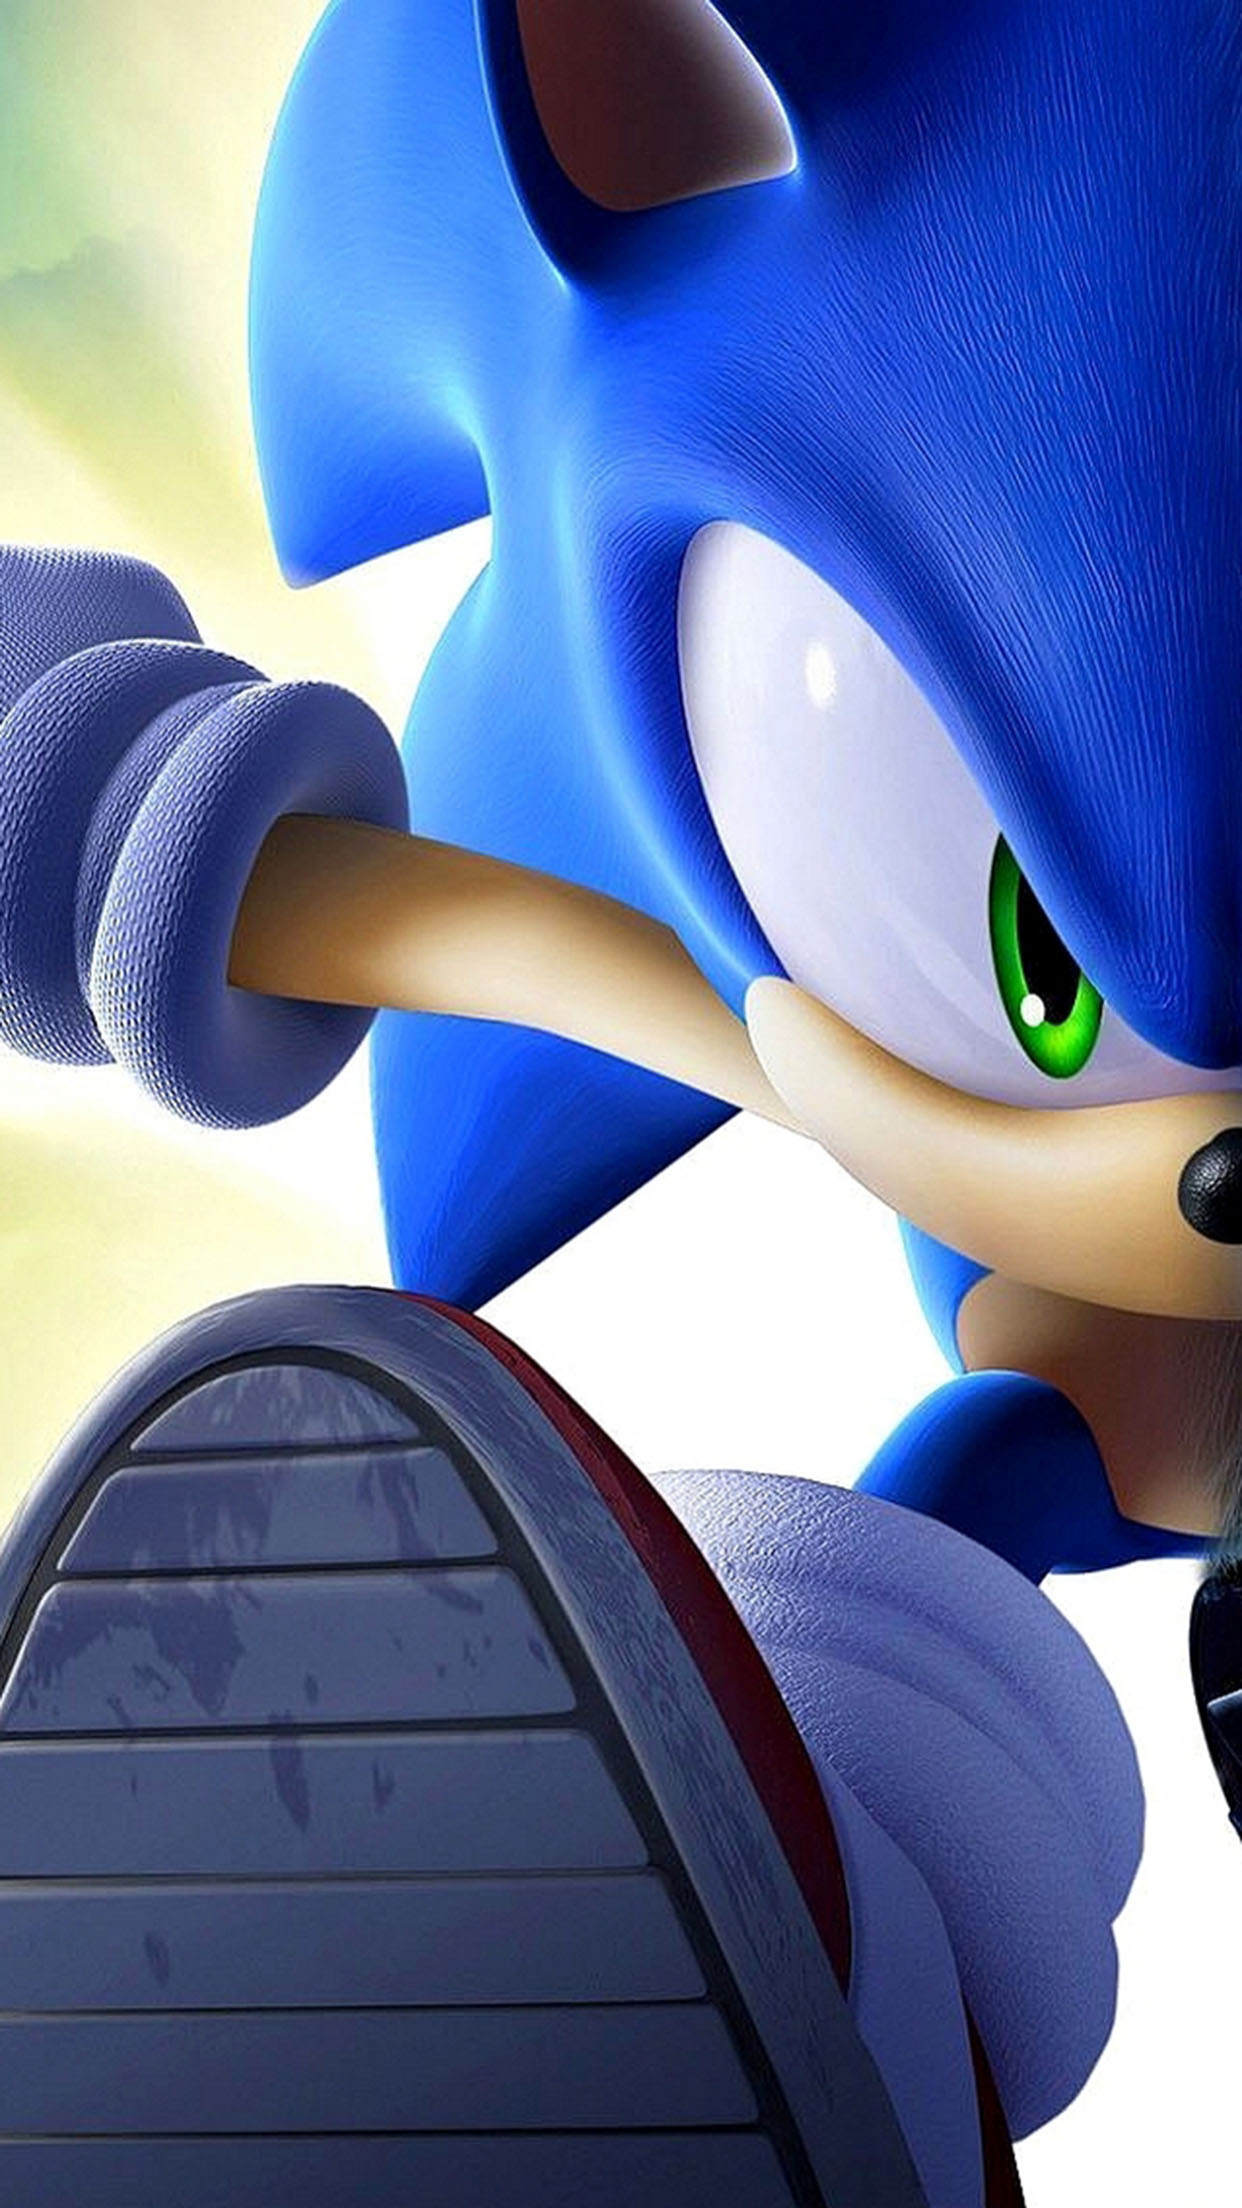 Sonic Sonic 1 3Wallpapers iPhone Parallax Sonic 1